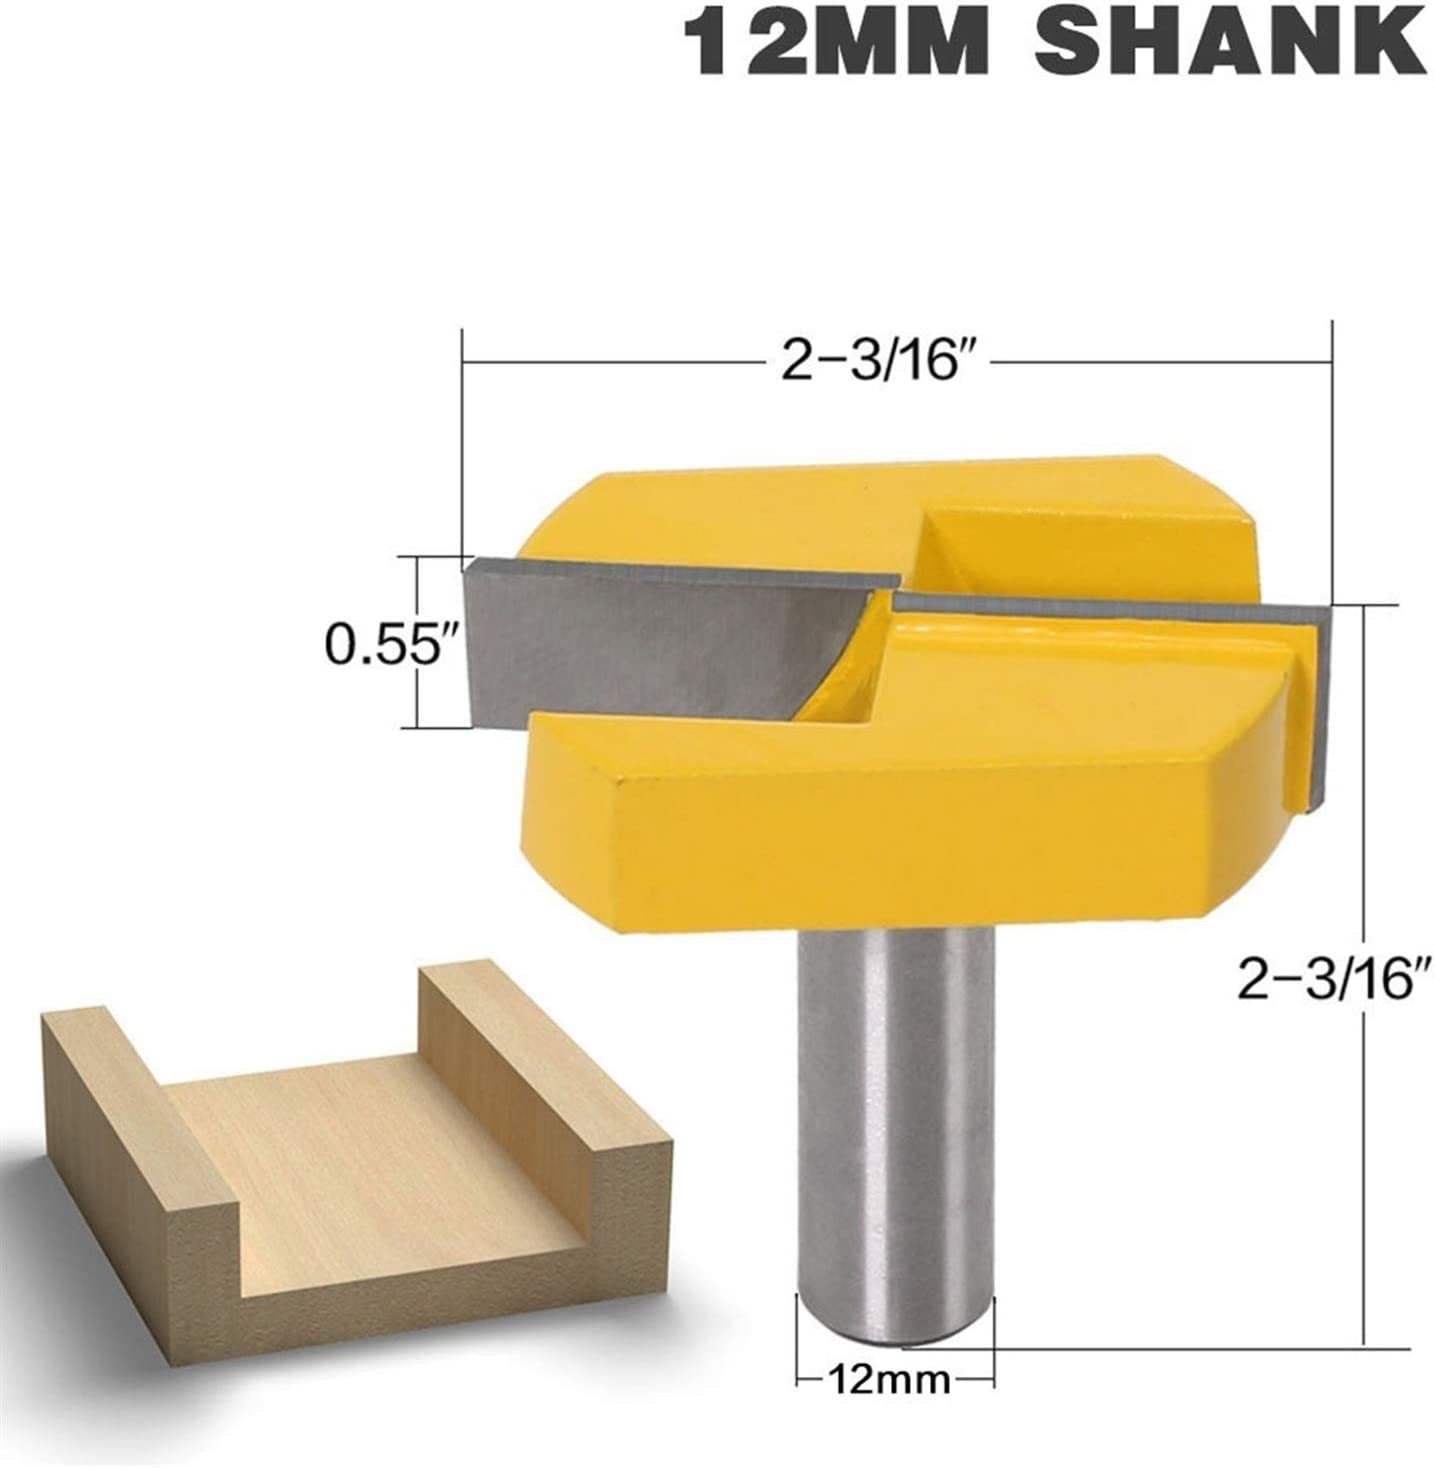 for Home /& DIY 12 Shank 2-3//16 Cutting Diameter for Surface Planing Router Bit Cleaning Bottom Router Bits Jinchao-Router bits